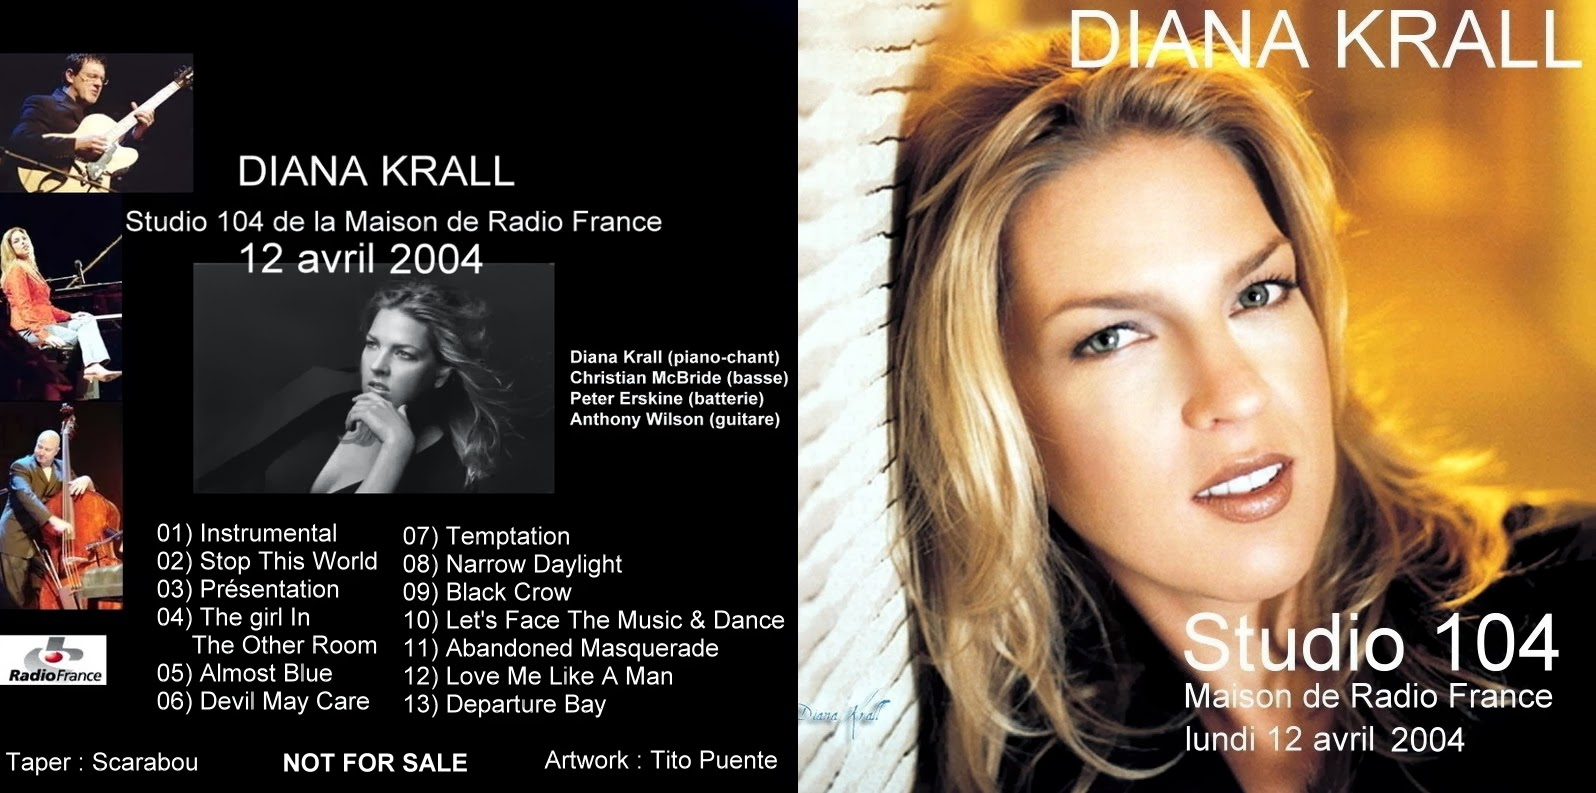 Diana krall live in paris dvd download